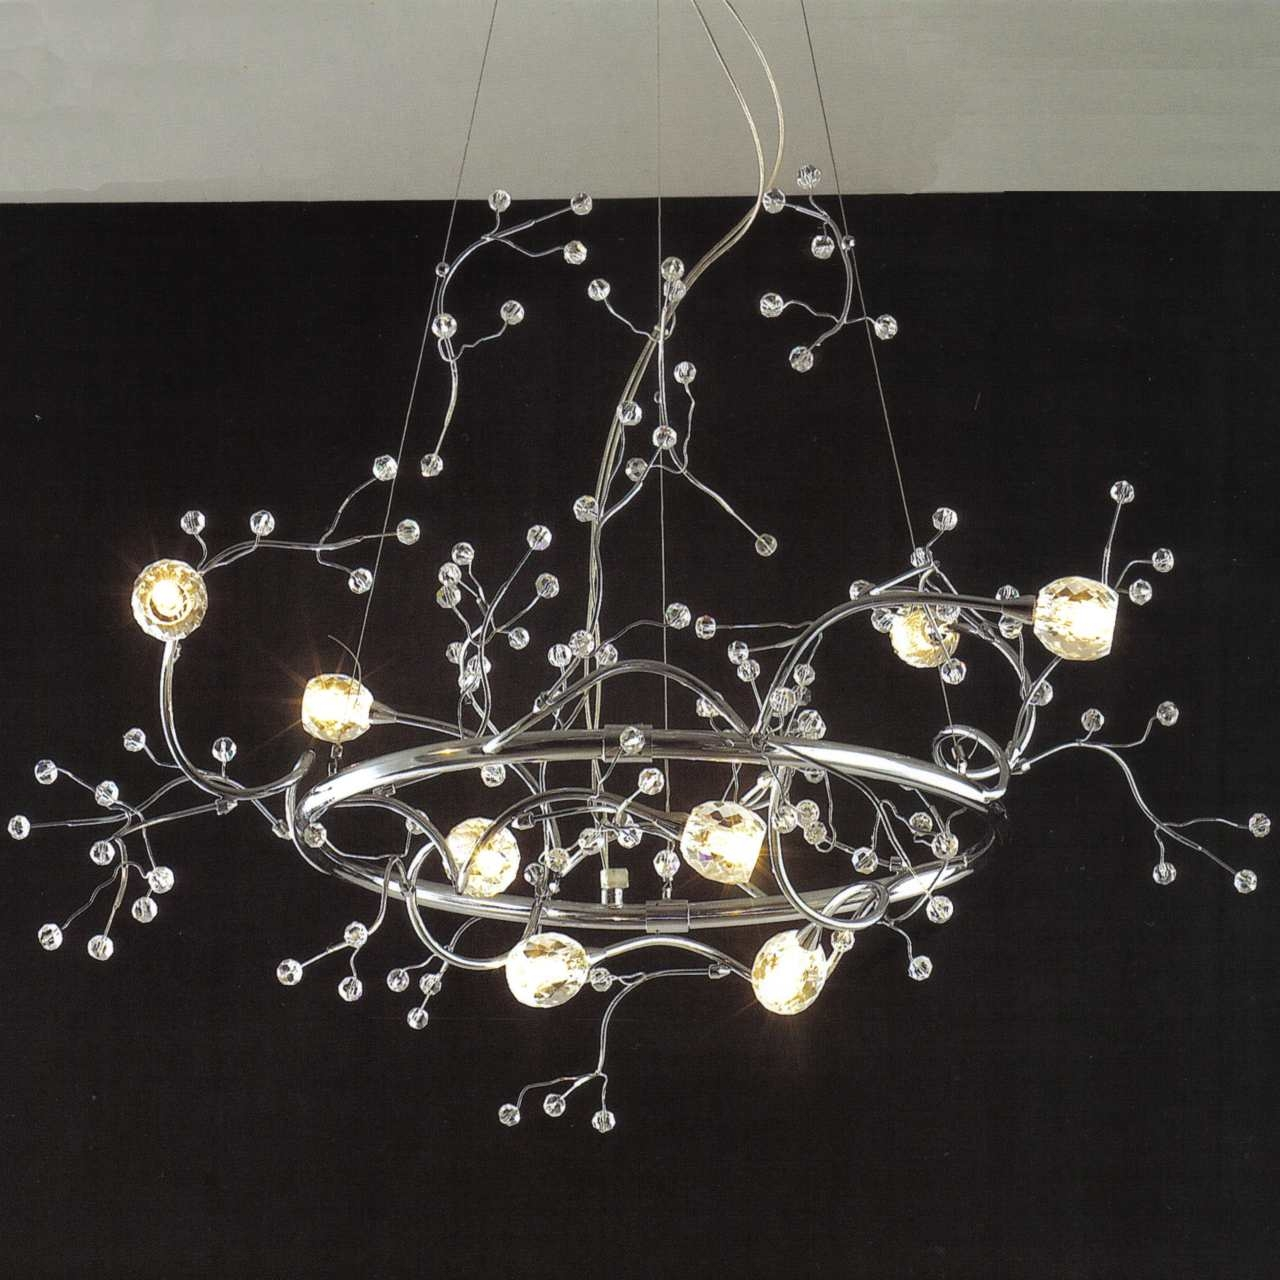 Brizzo Lighting Stores 32 Albero Modern Crystal Round Branch Regarding Crystal Branch Chandelier (Image 2 of 15)